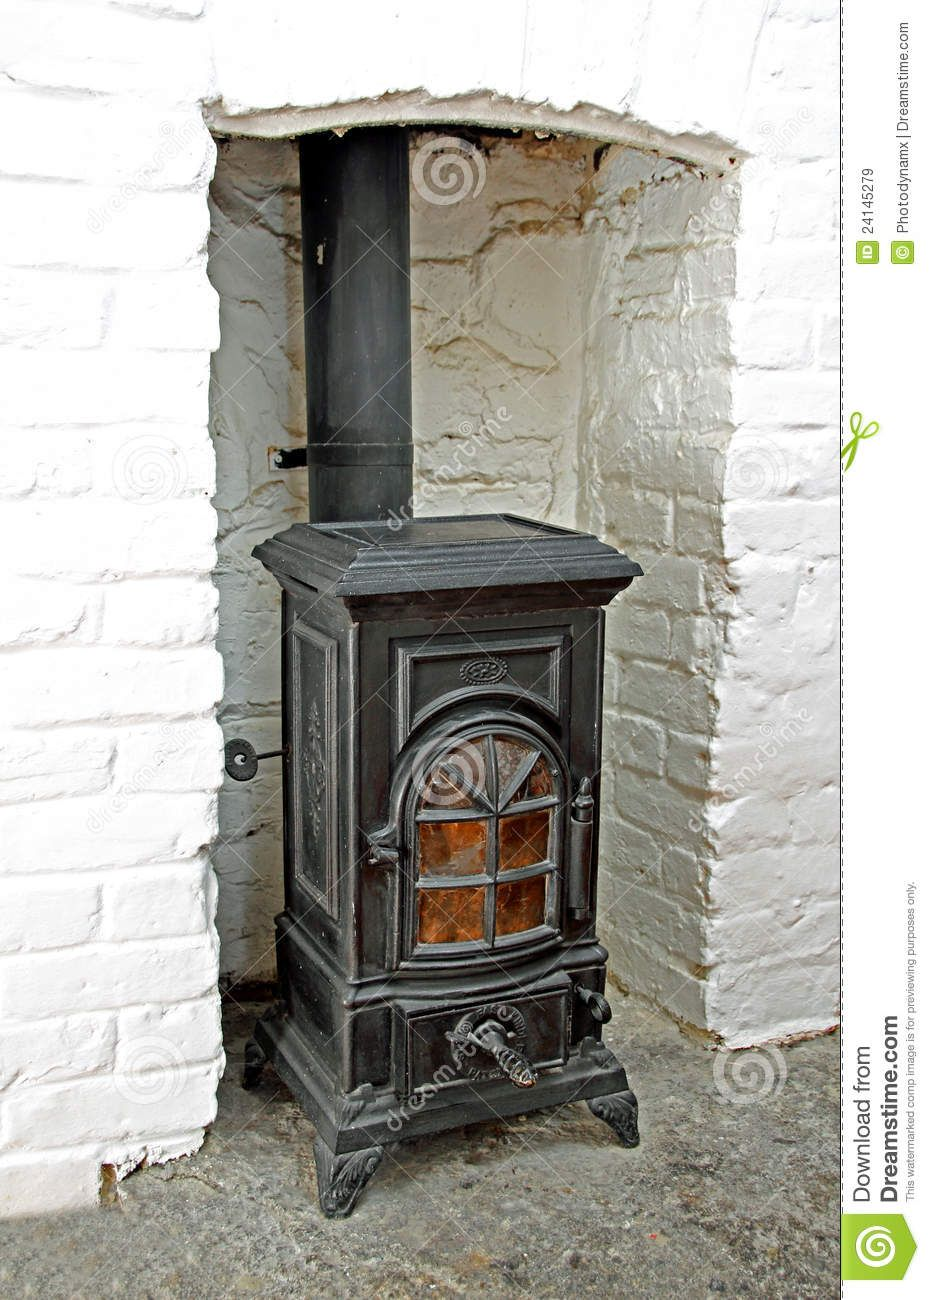 old victorian wood stoves | Photo of a old black iron victorian wood  burning stove in - Old Victorian Wood Stoves Photo Of A Old Black Iron Victorian